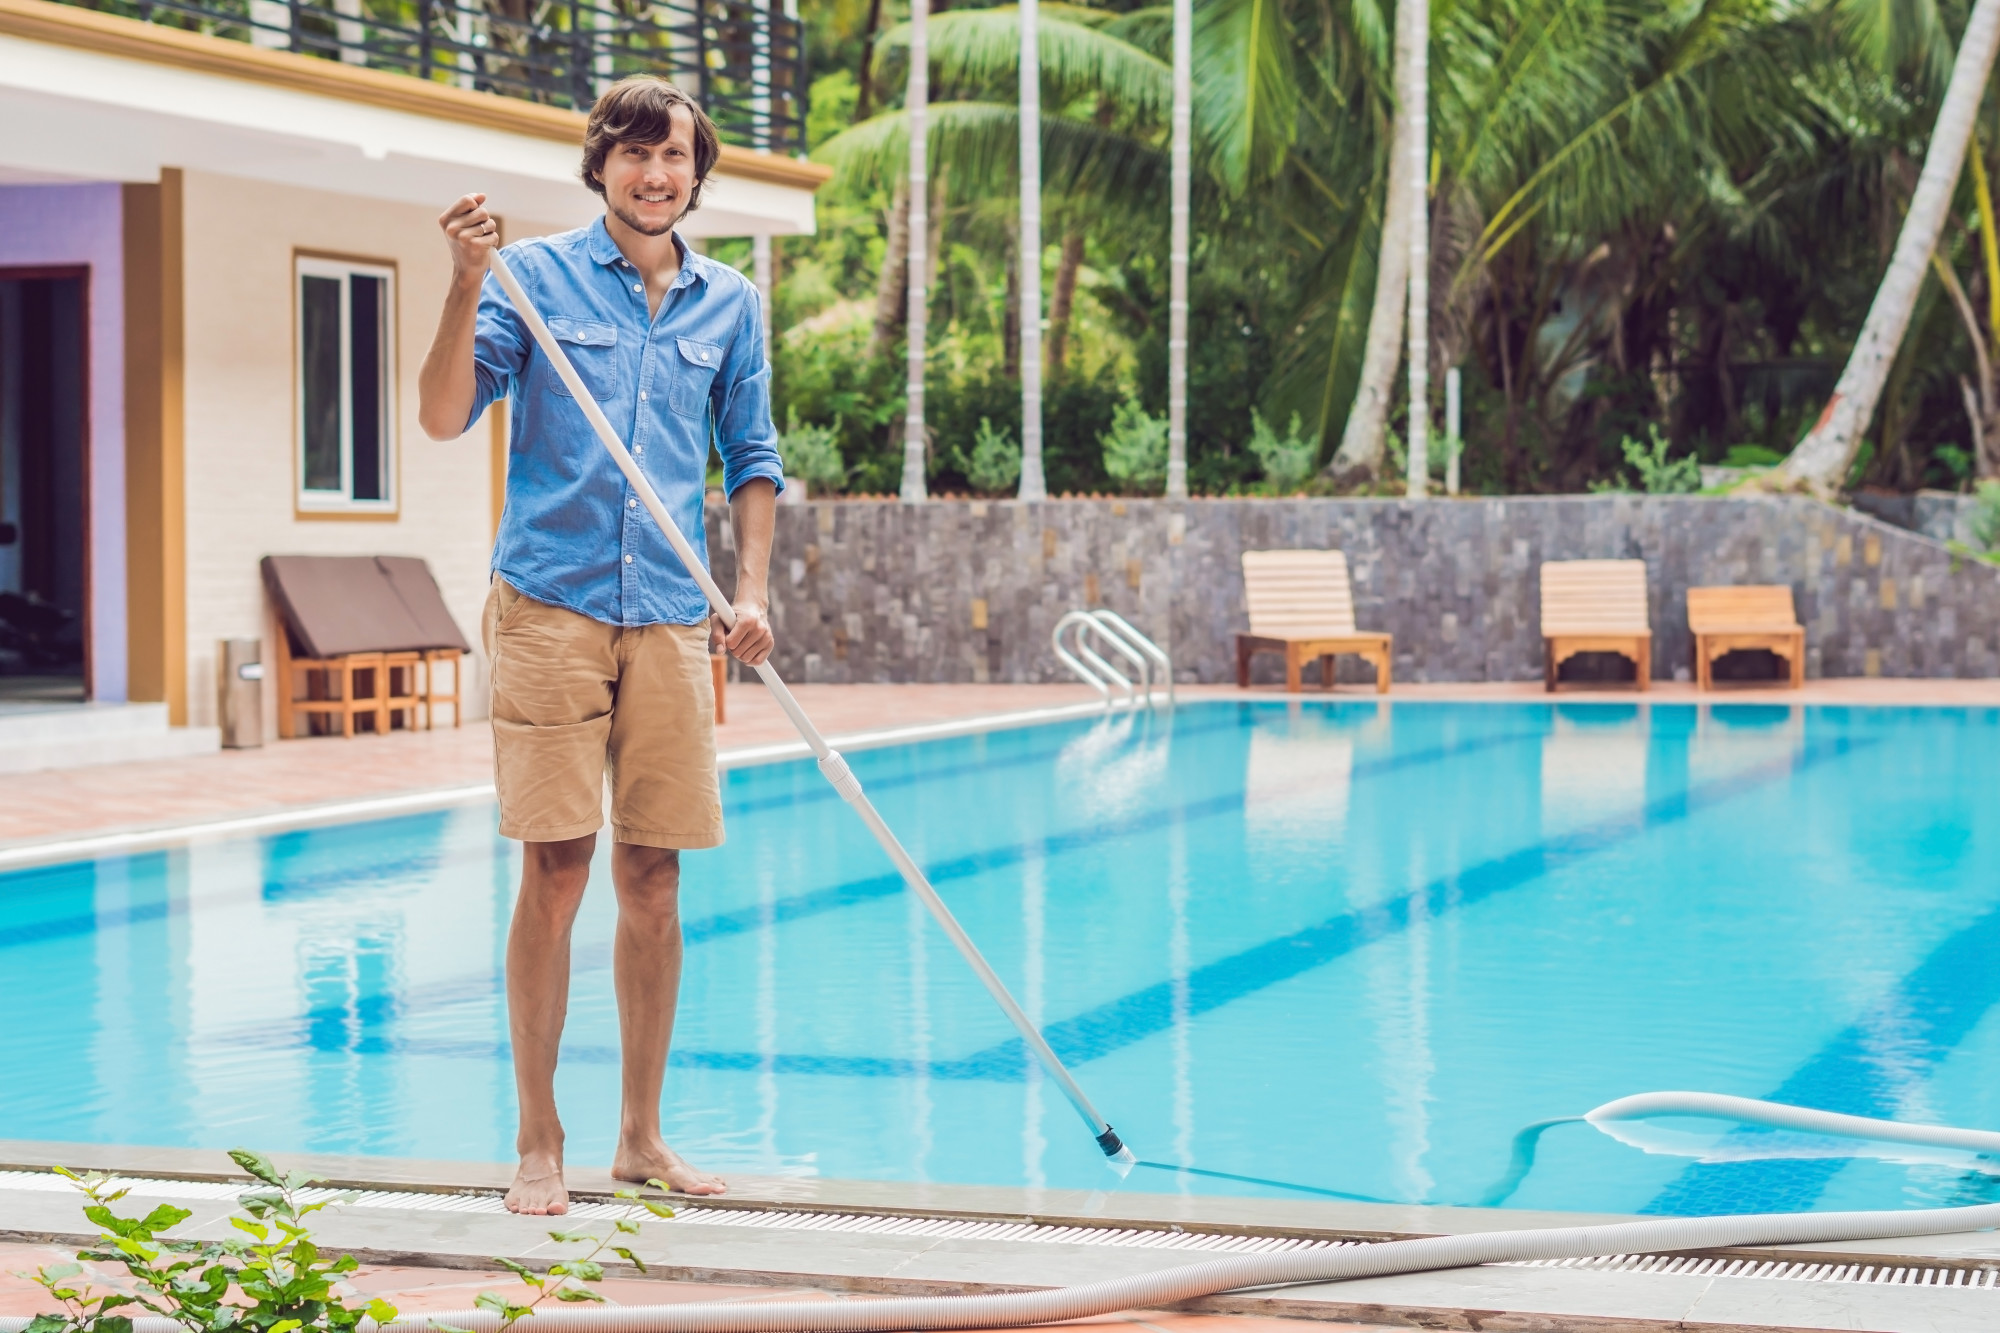 Swimming Pool Maintenance Tips Every